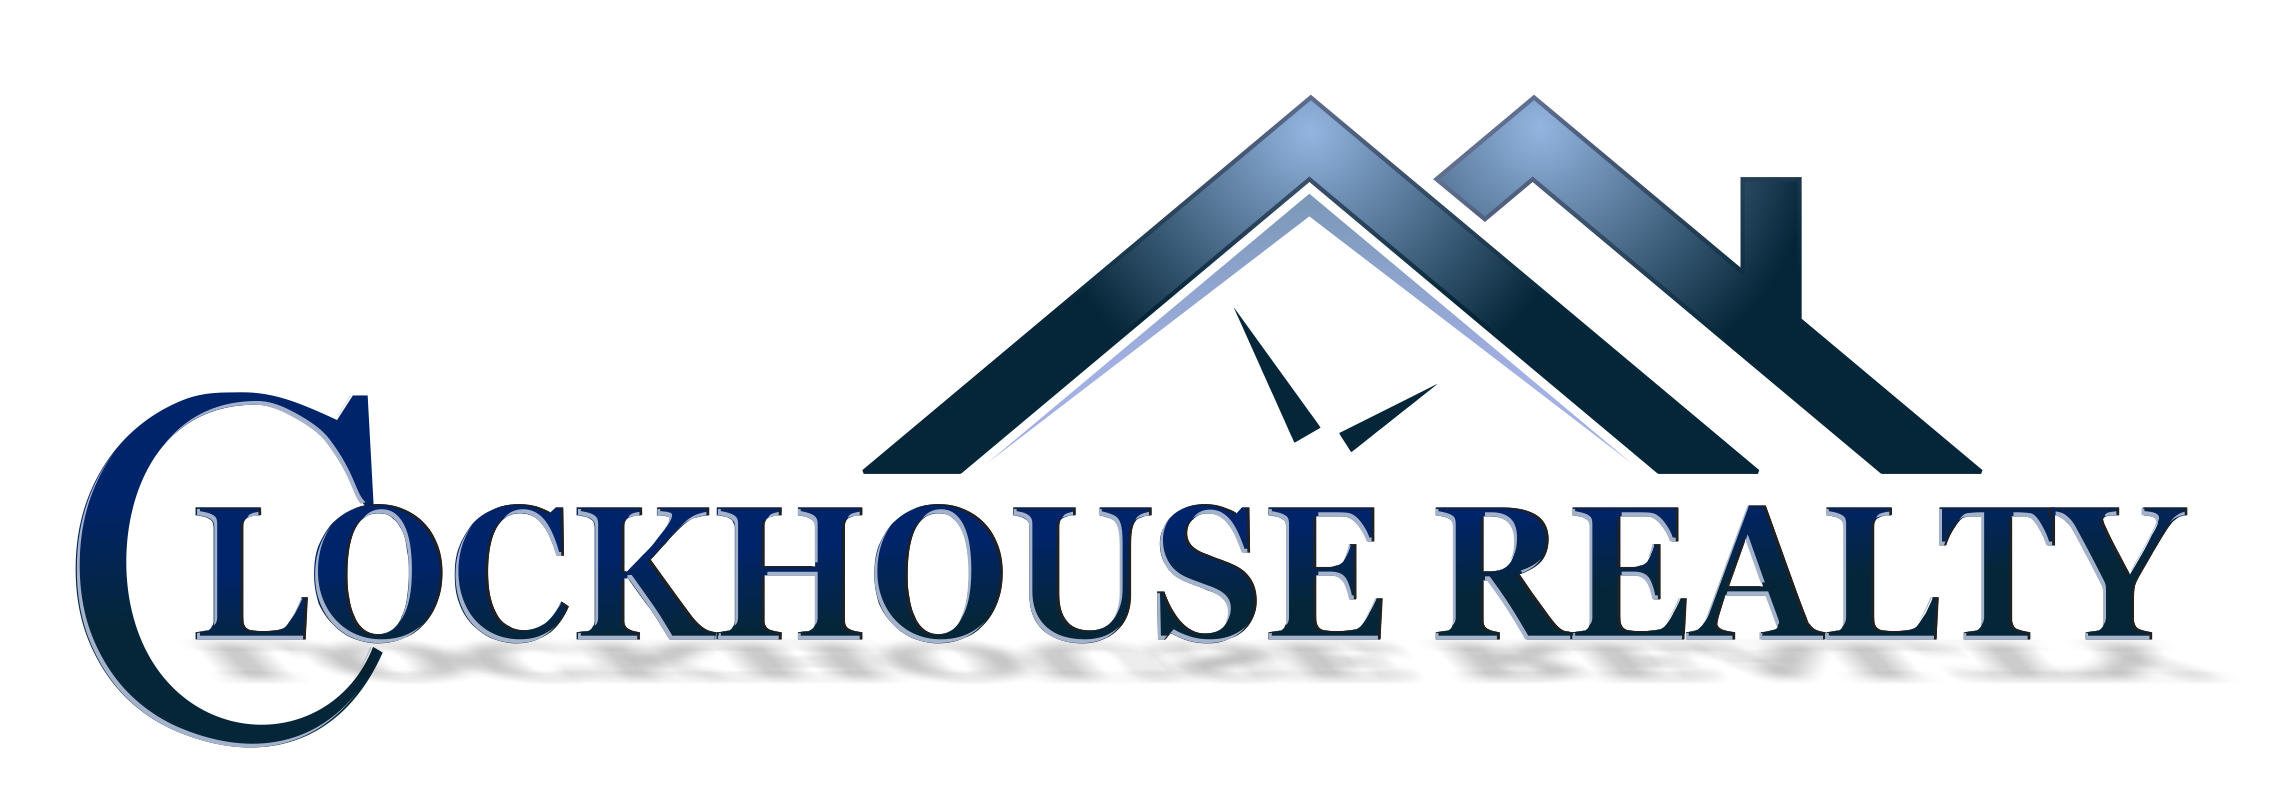 Clockhouse Realty